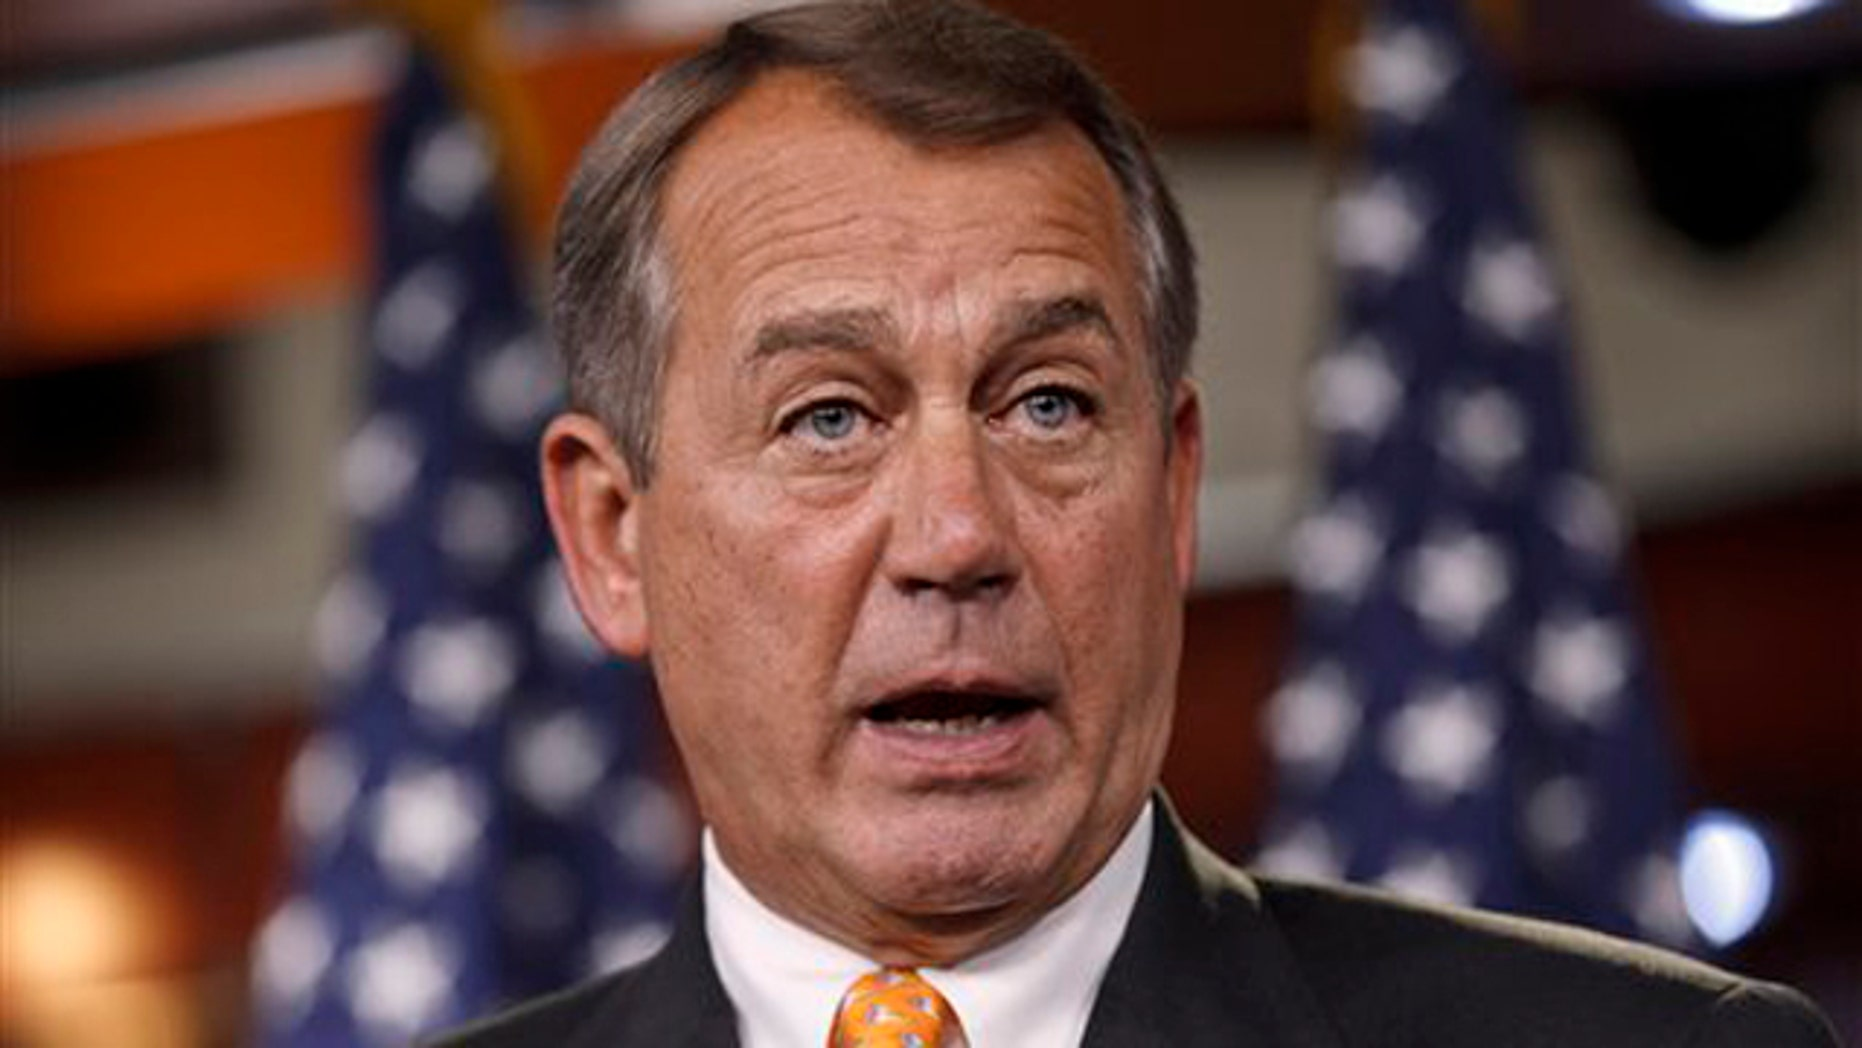 March 22, 2012: House Speaker John Boehner speaks during a news conference on Capitol Hill in Washington.